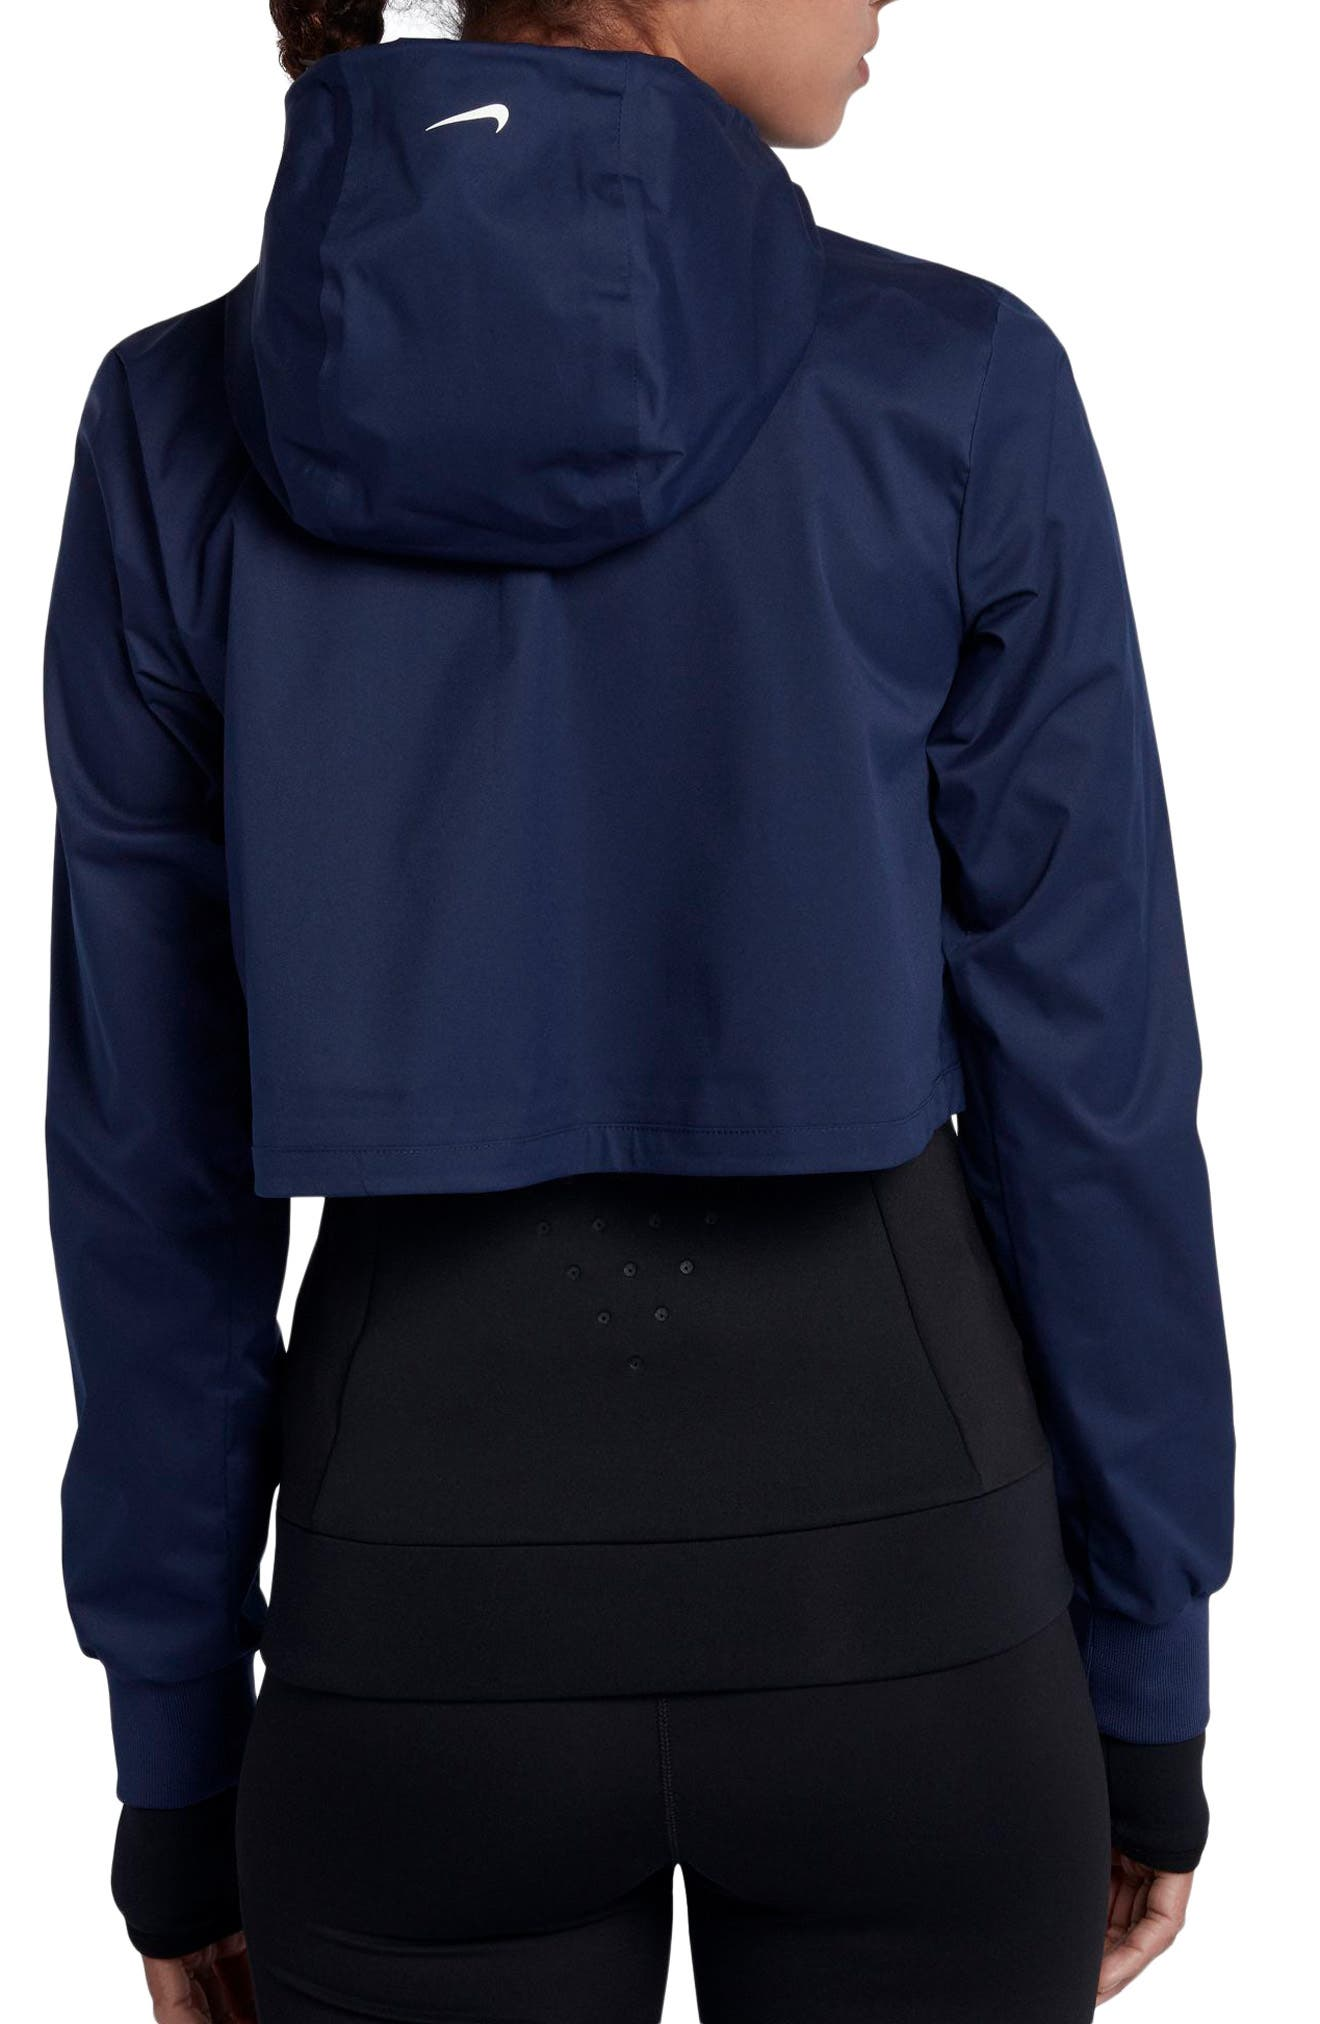 Therma Shield 2-in-1 Training Jacket,                             Alternate thumbnail 3, color,                             429